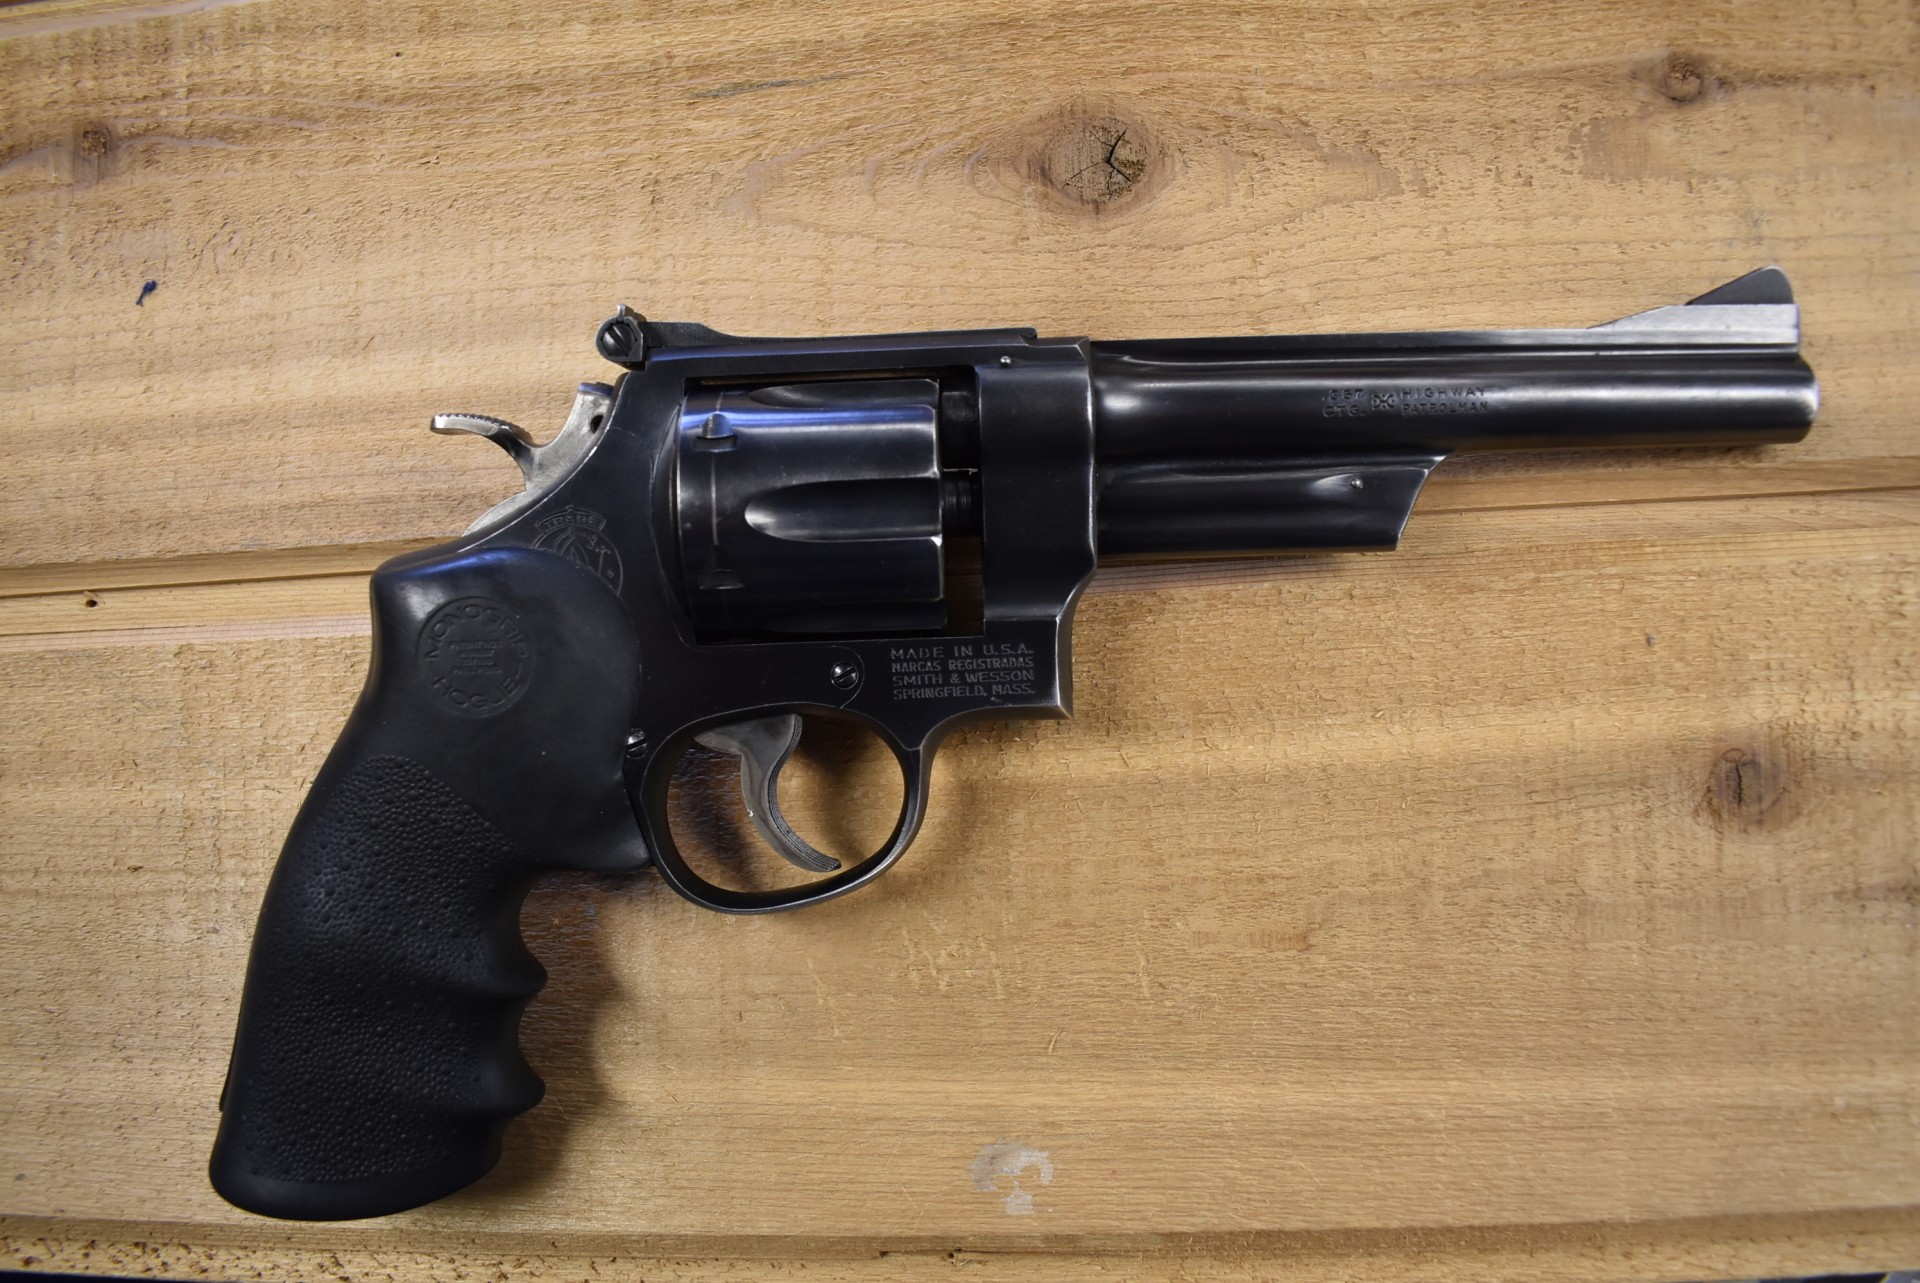 Smith & Wesson 28-2 357 mag